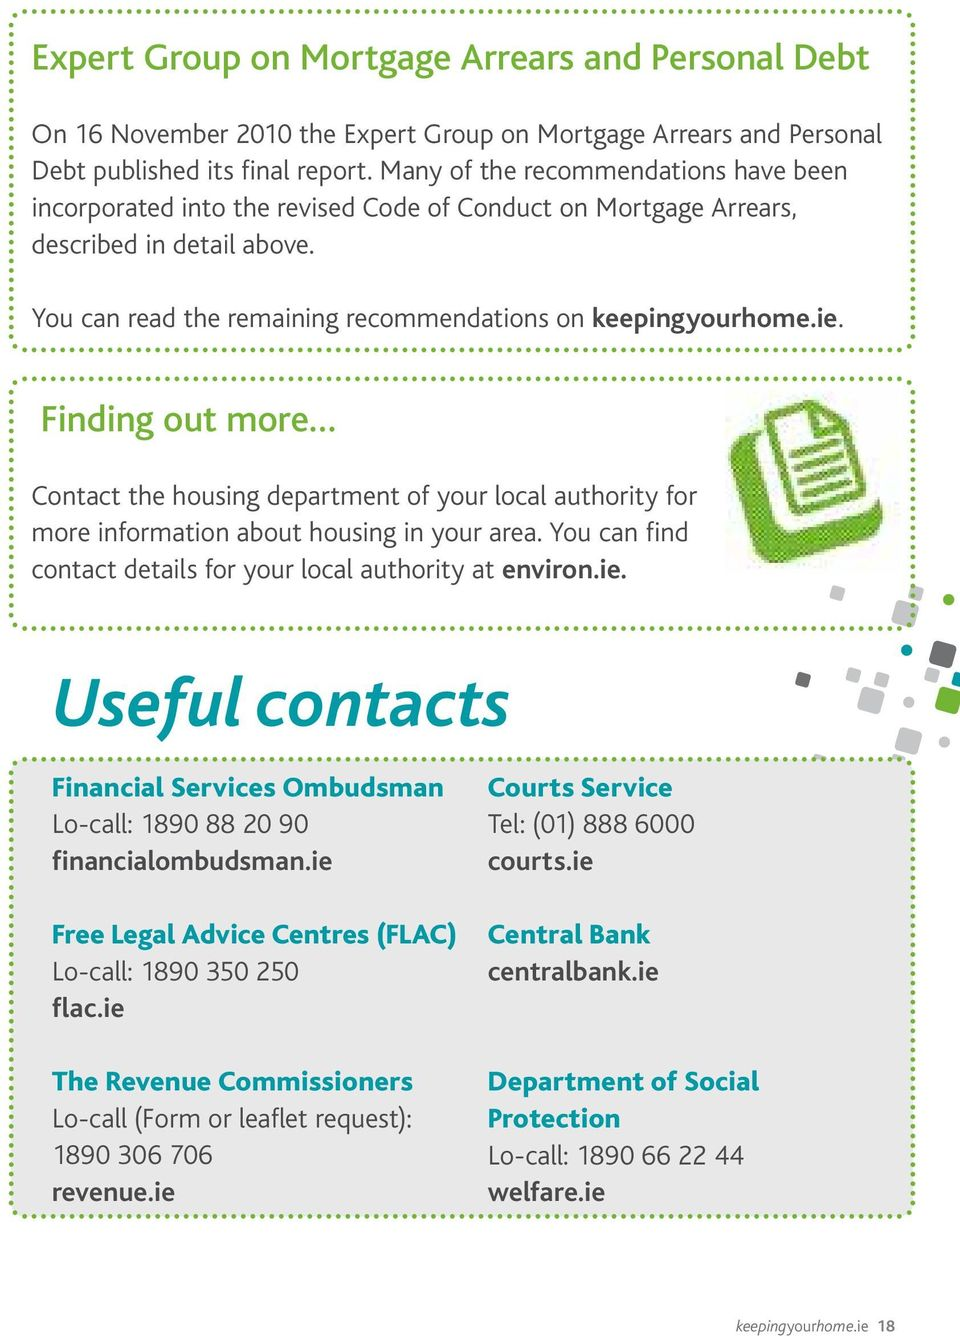 Finding out more Contact the housing department of your local authority for more information about housing in your area. You can find contact details for your local authority at environ.ie.